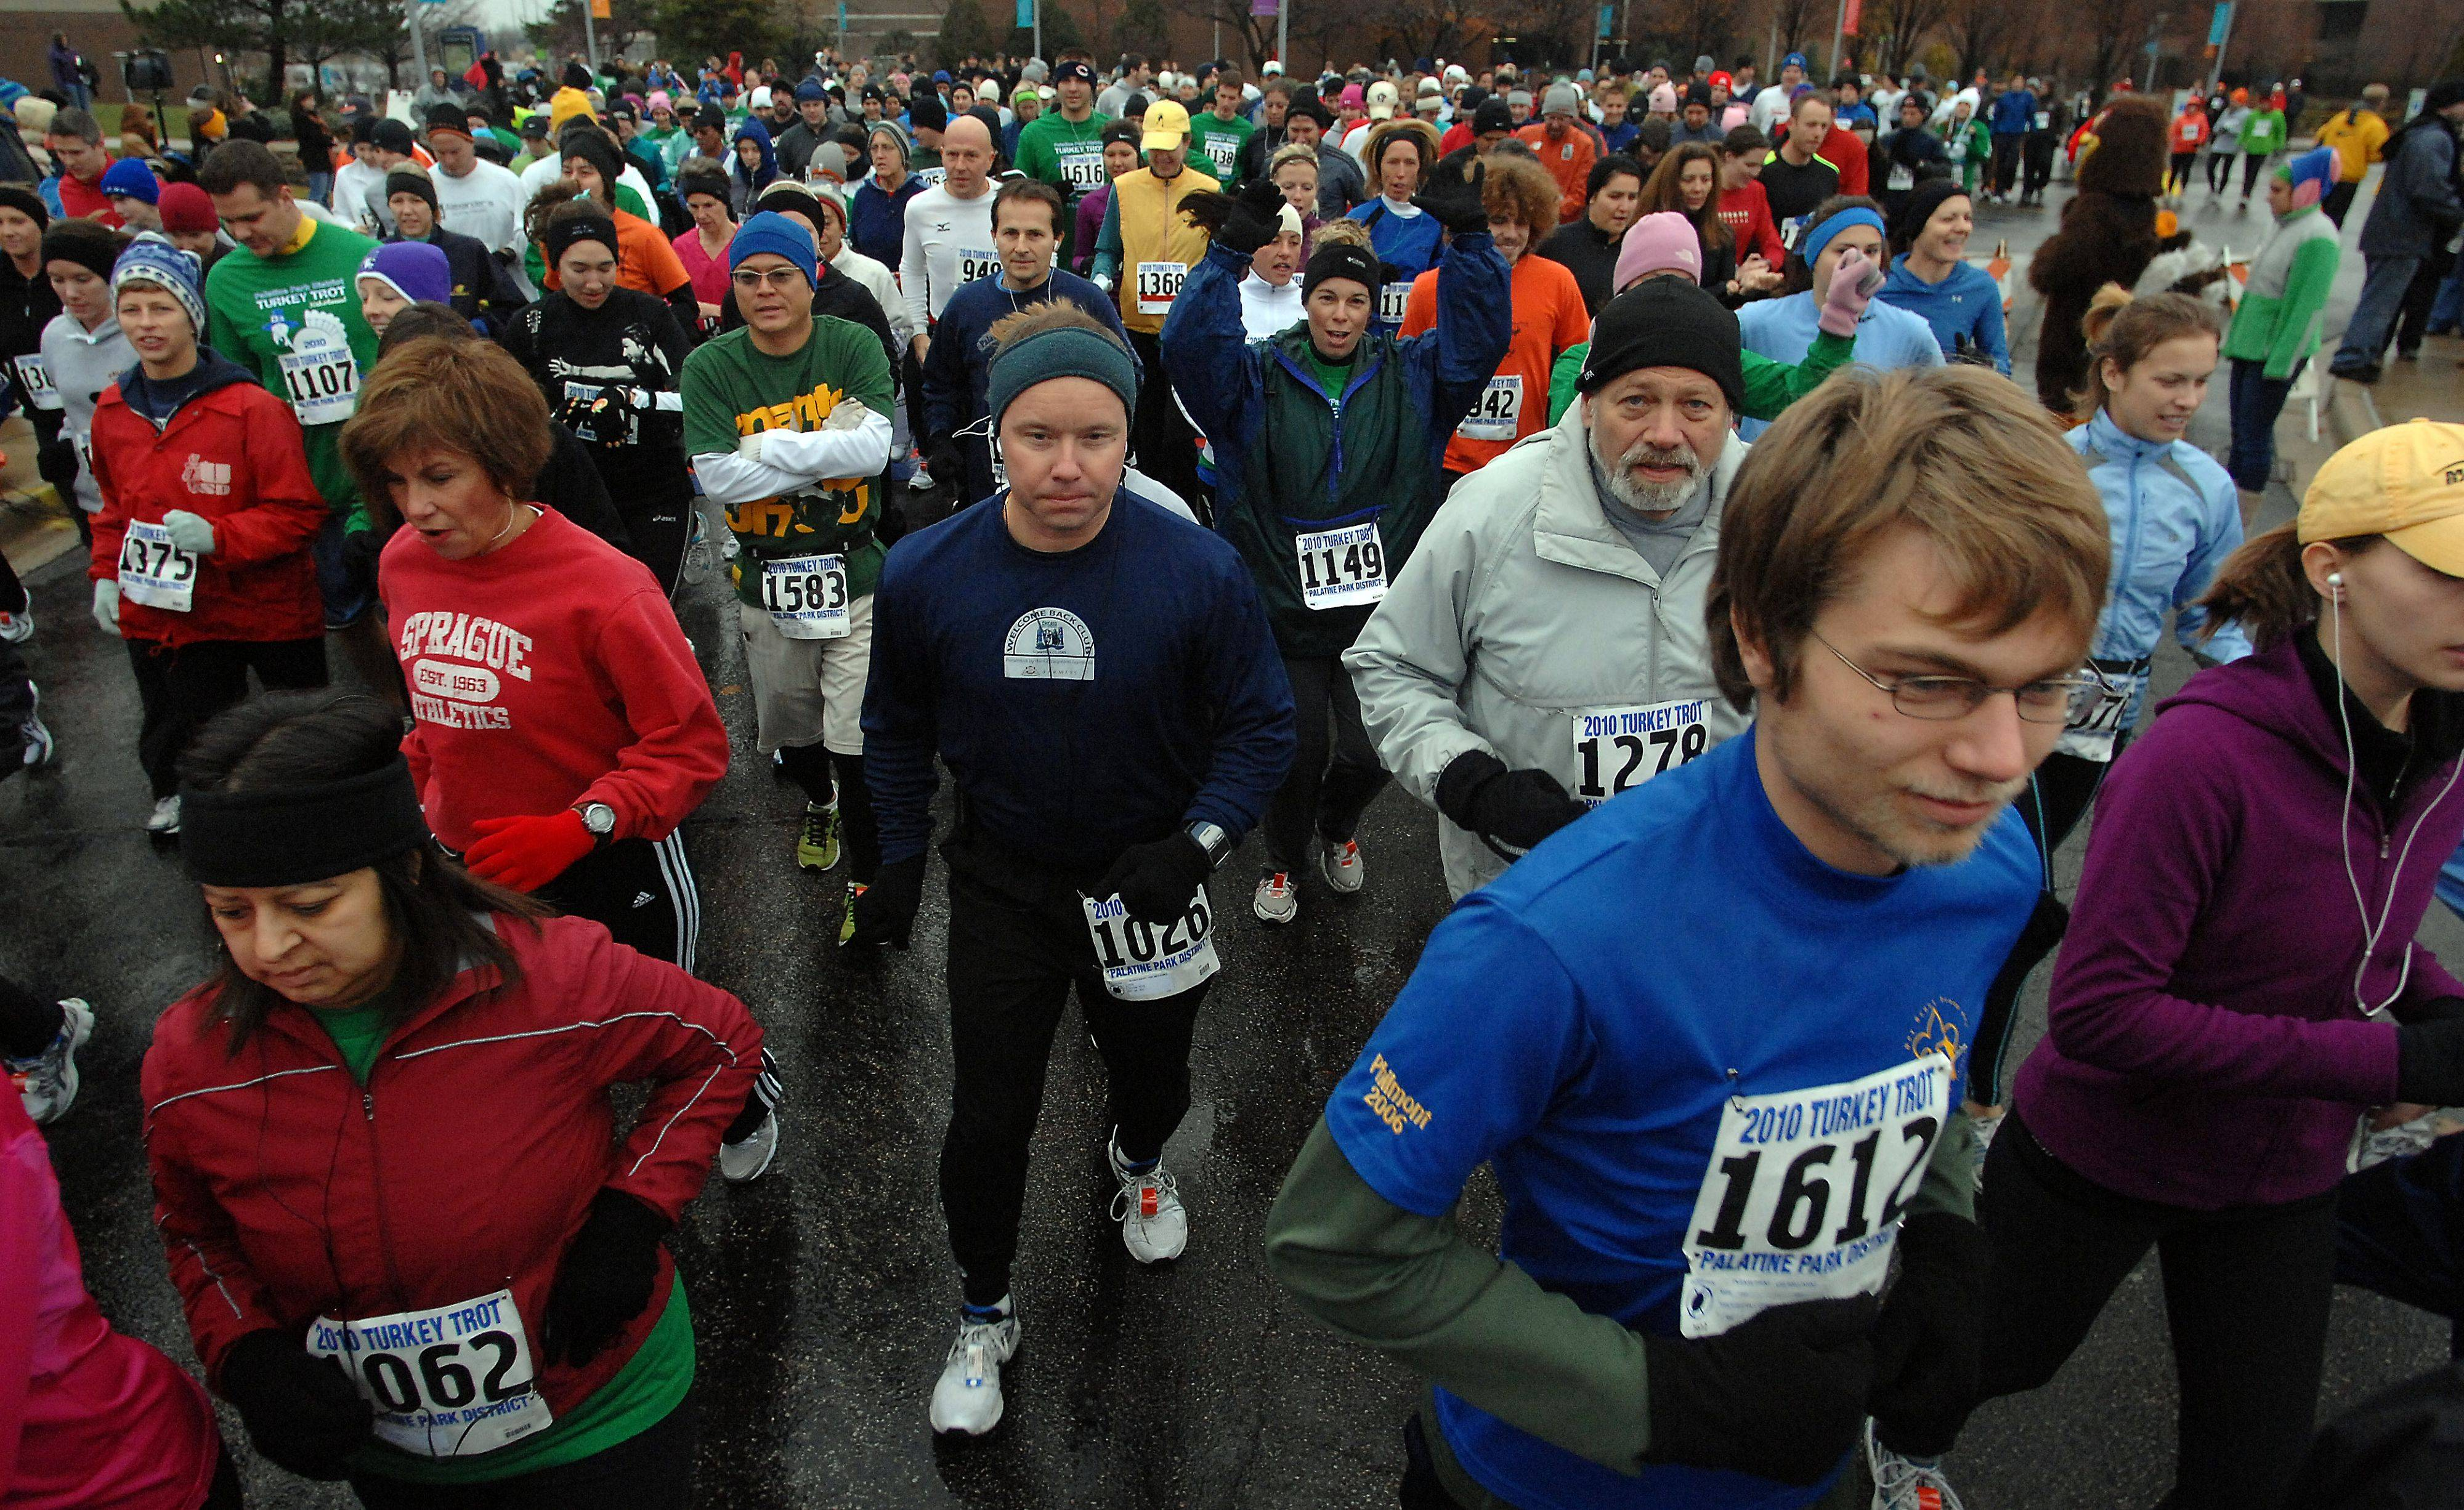 Runners start the Turkey Trot five-mile course at the 30th annual Thanksgiving Day Turkey Trot held on the William Rainey Harper College campus in Palatine.